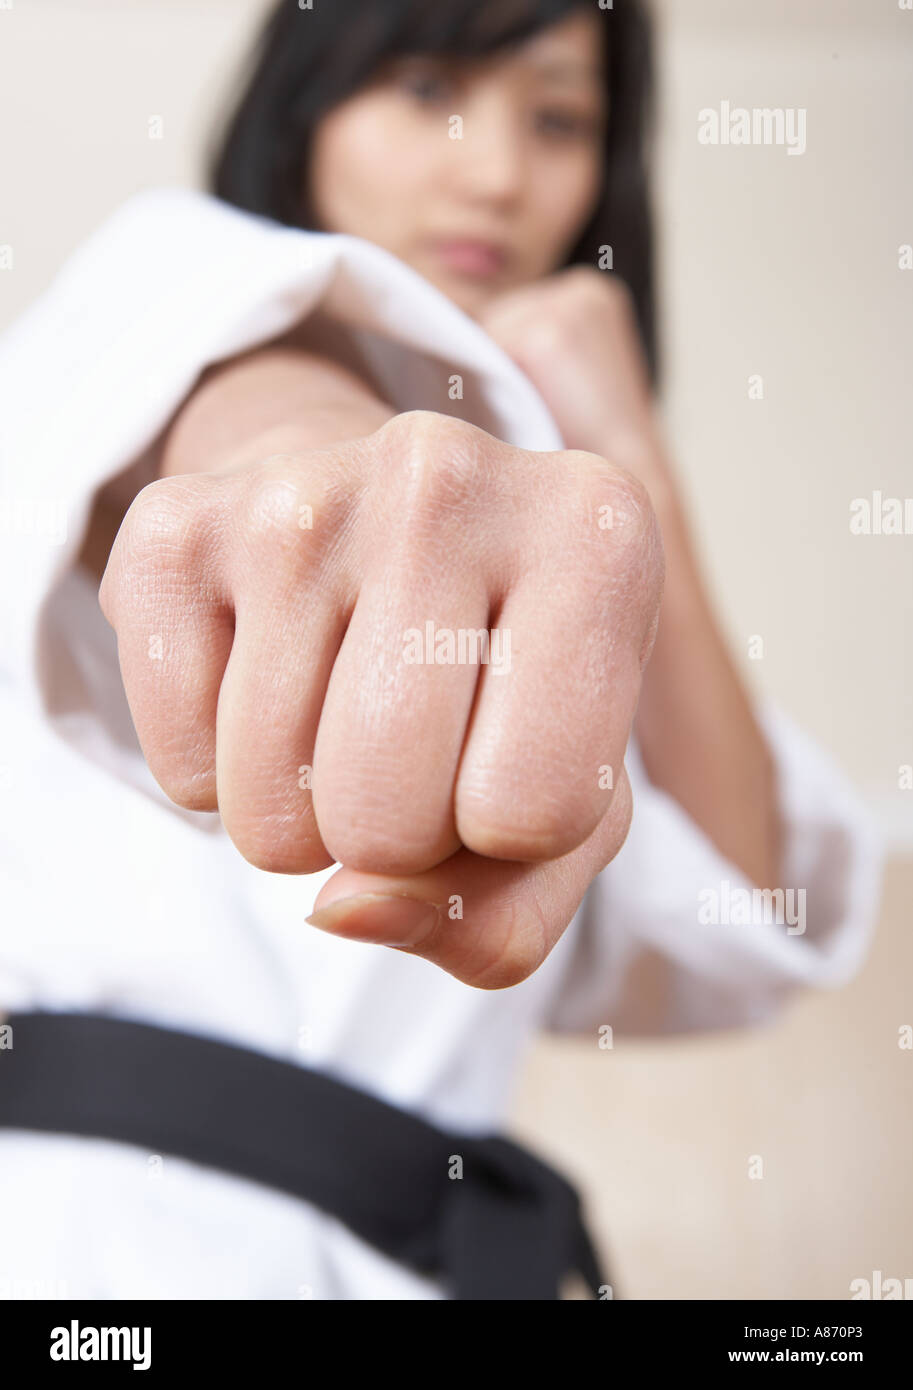 Female Martial Artists High Resolution Stock Photography And Images Alamy